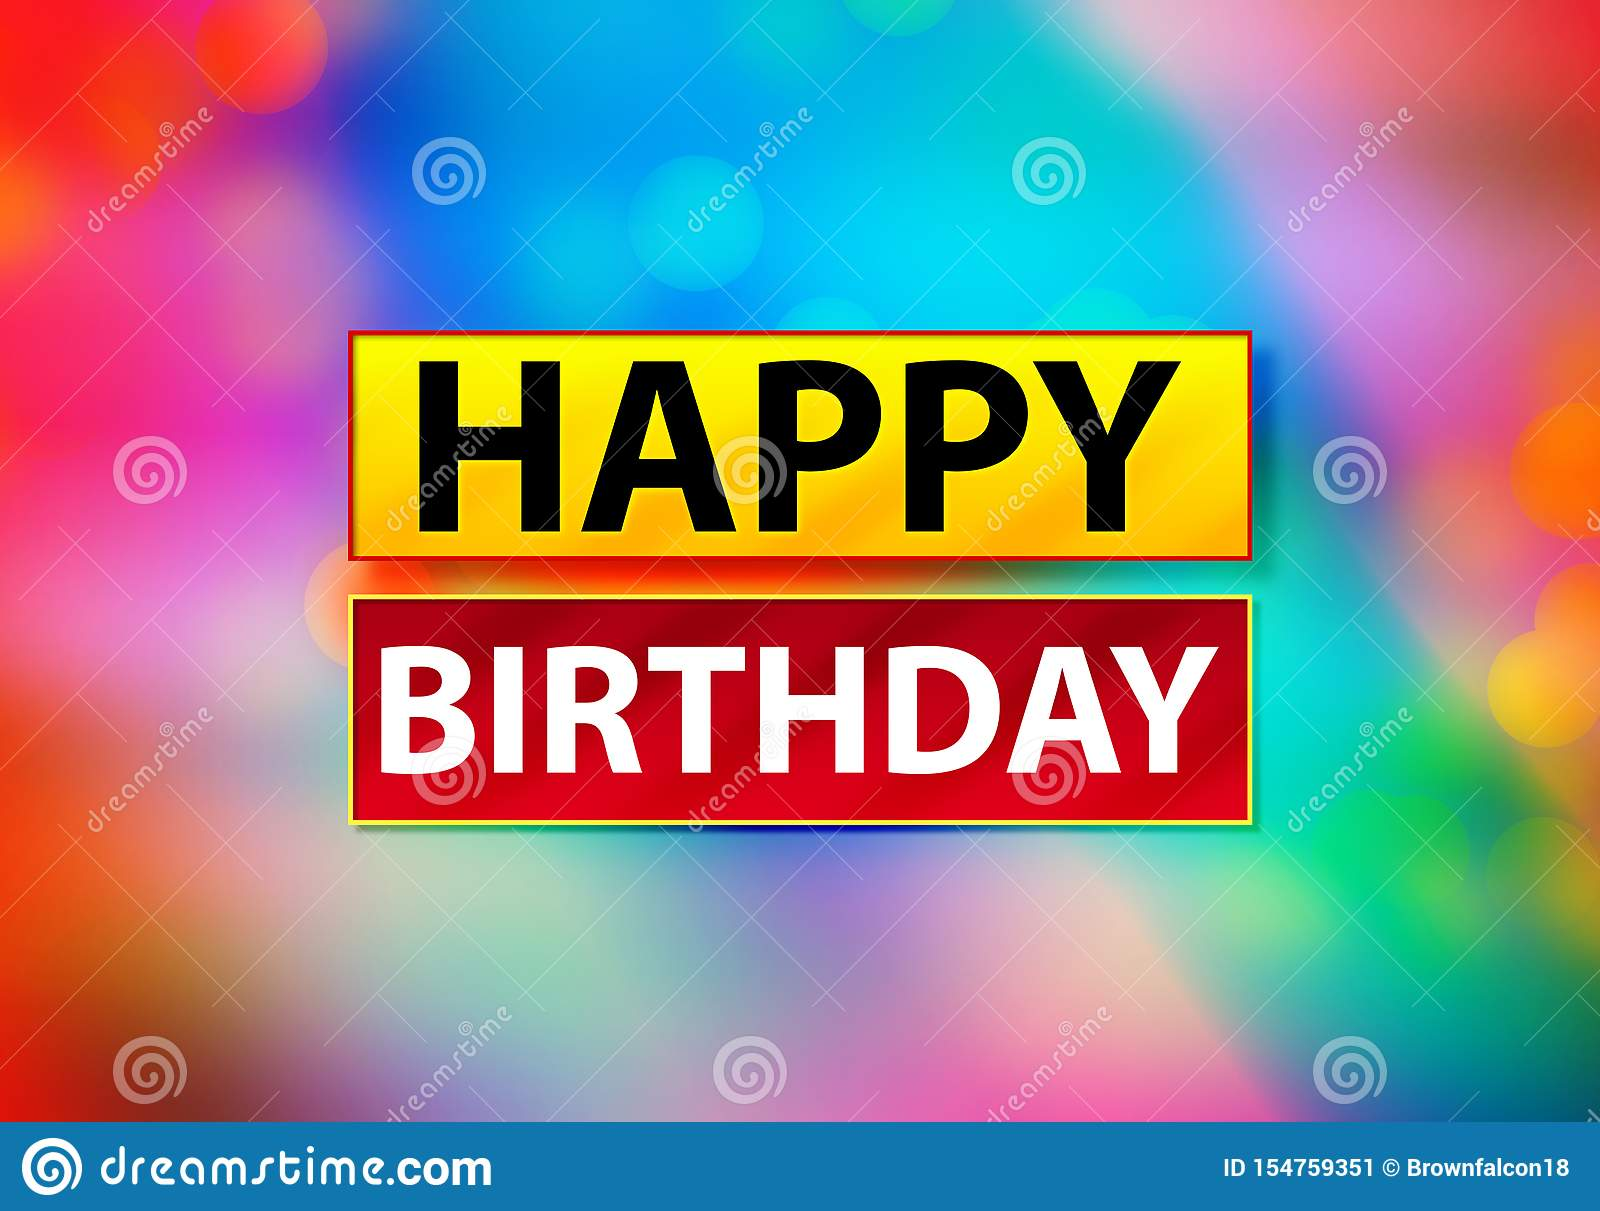 Happy Birthday Abstract Colorful Background Bokeh Design Illustration